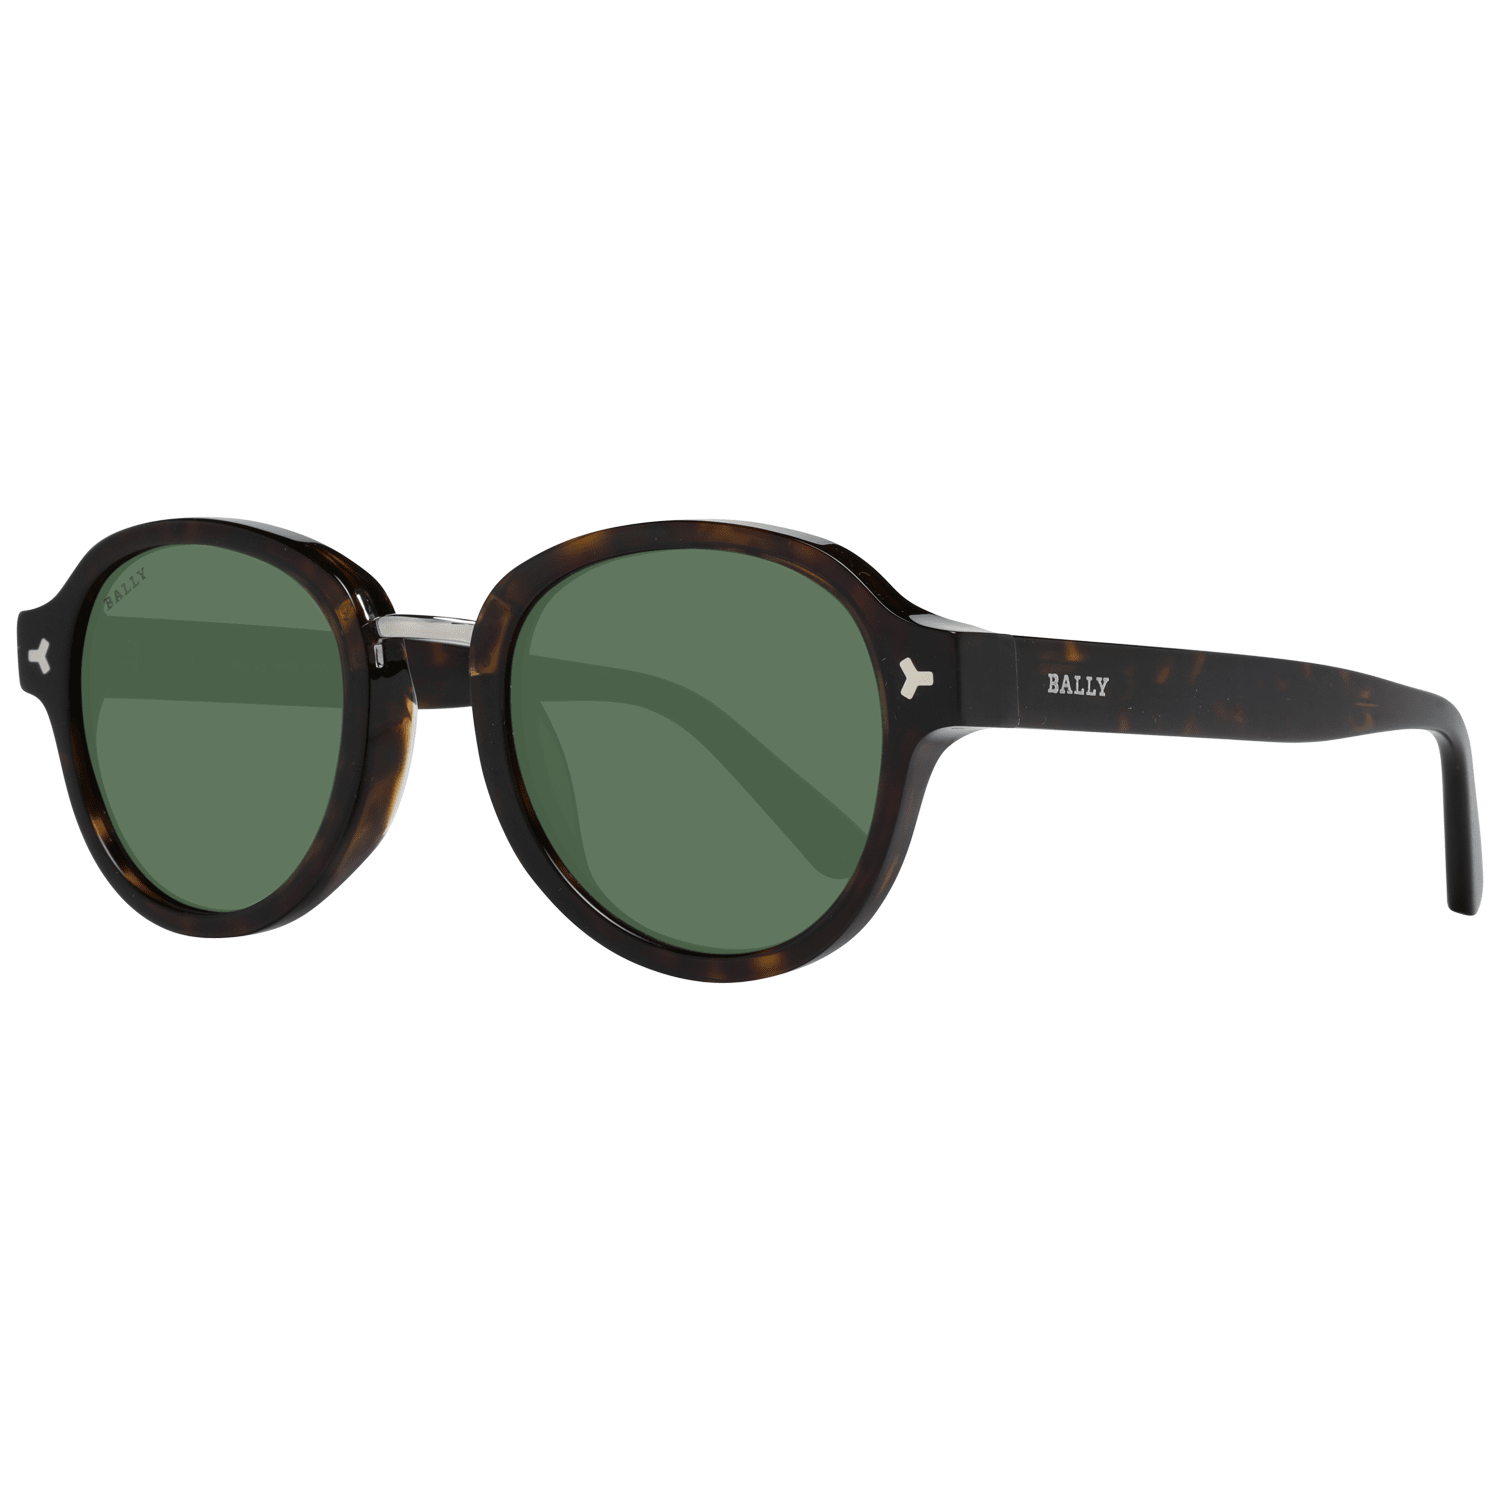 Bally Unisex Sunglasses Brown BY0031-H 4952N